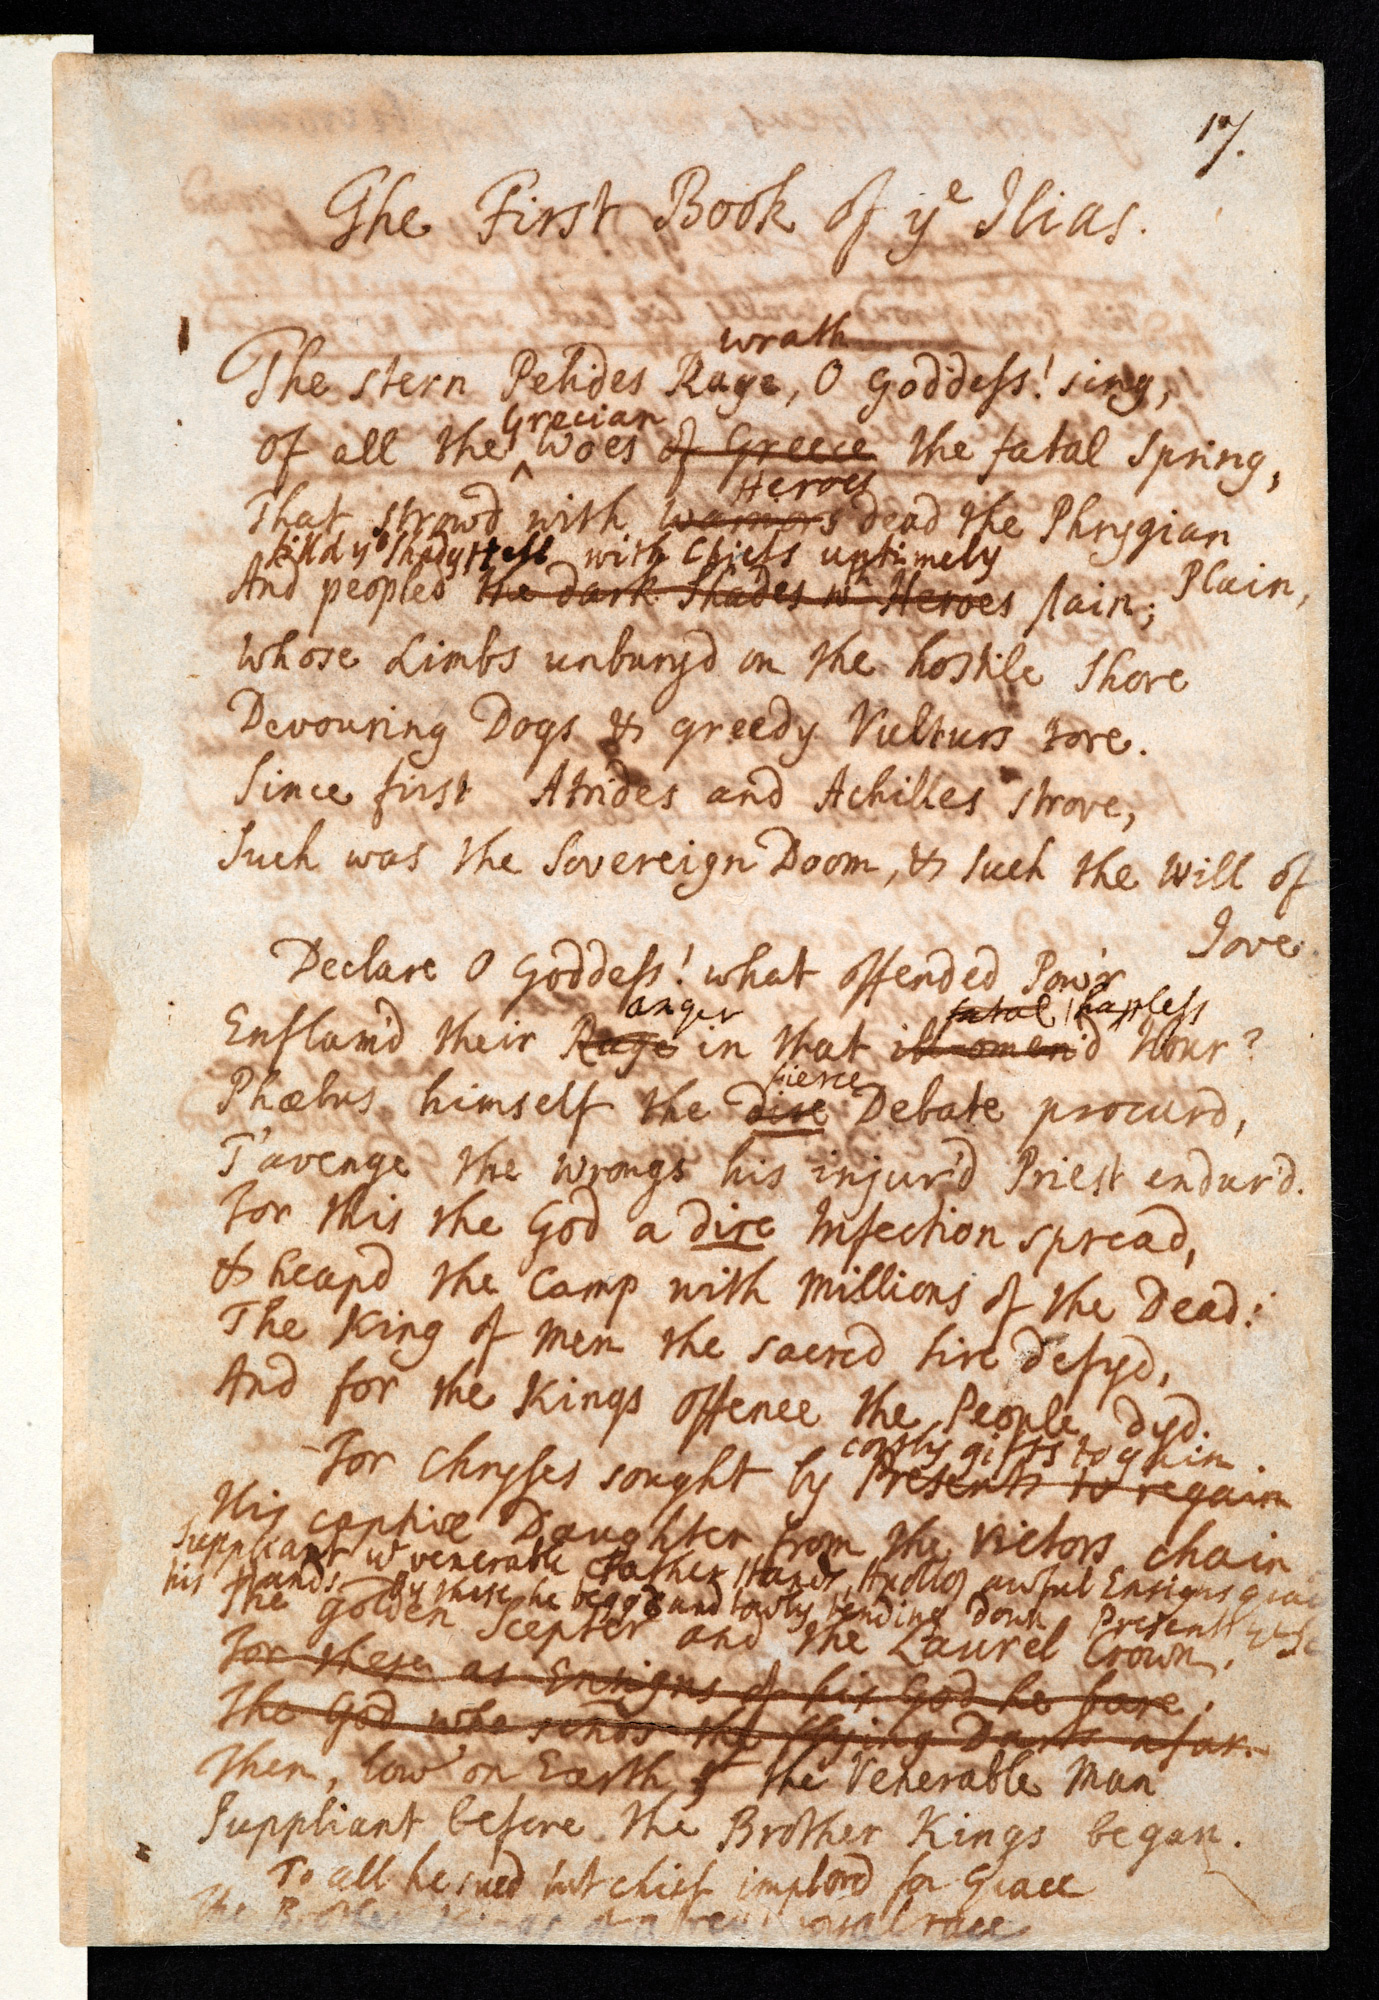 Alexander Pope's translation of the 'Iliad'